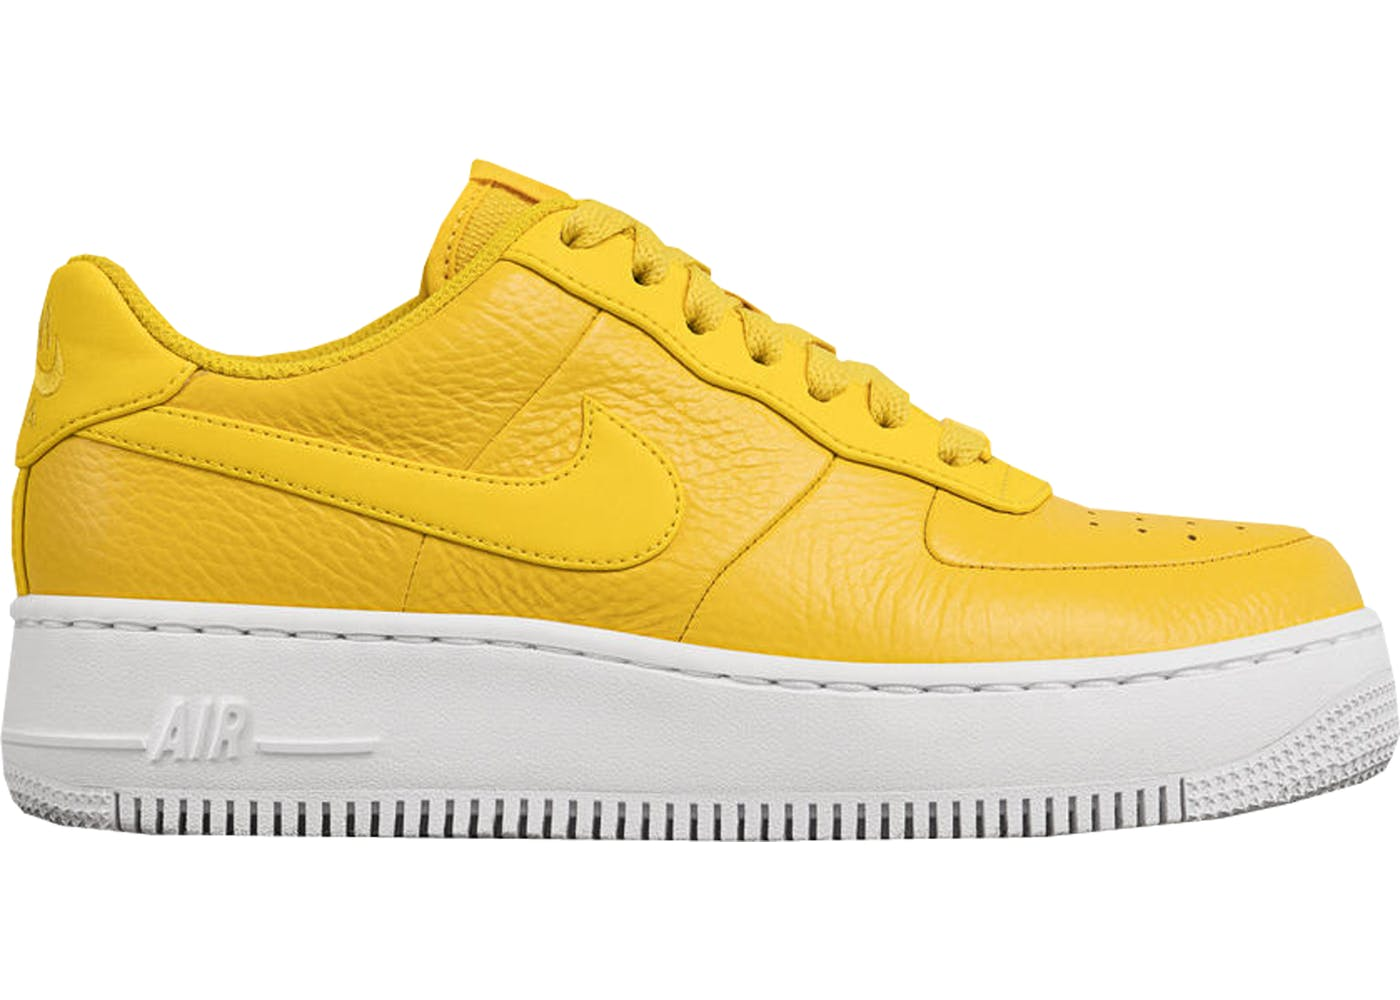 the best attitude 55405 0bc0a ... Air Force 1 Upstep Low Bread Butter Yellow (W) Nike ...